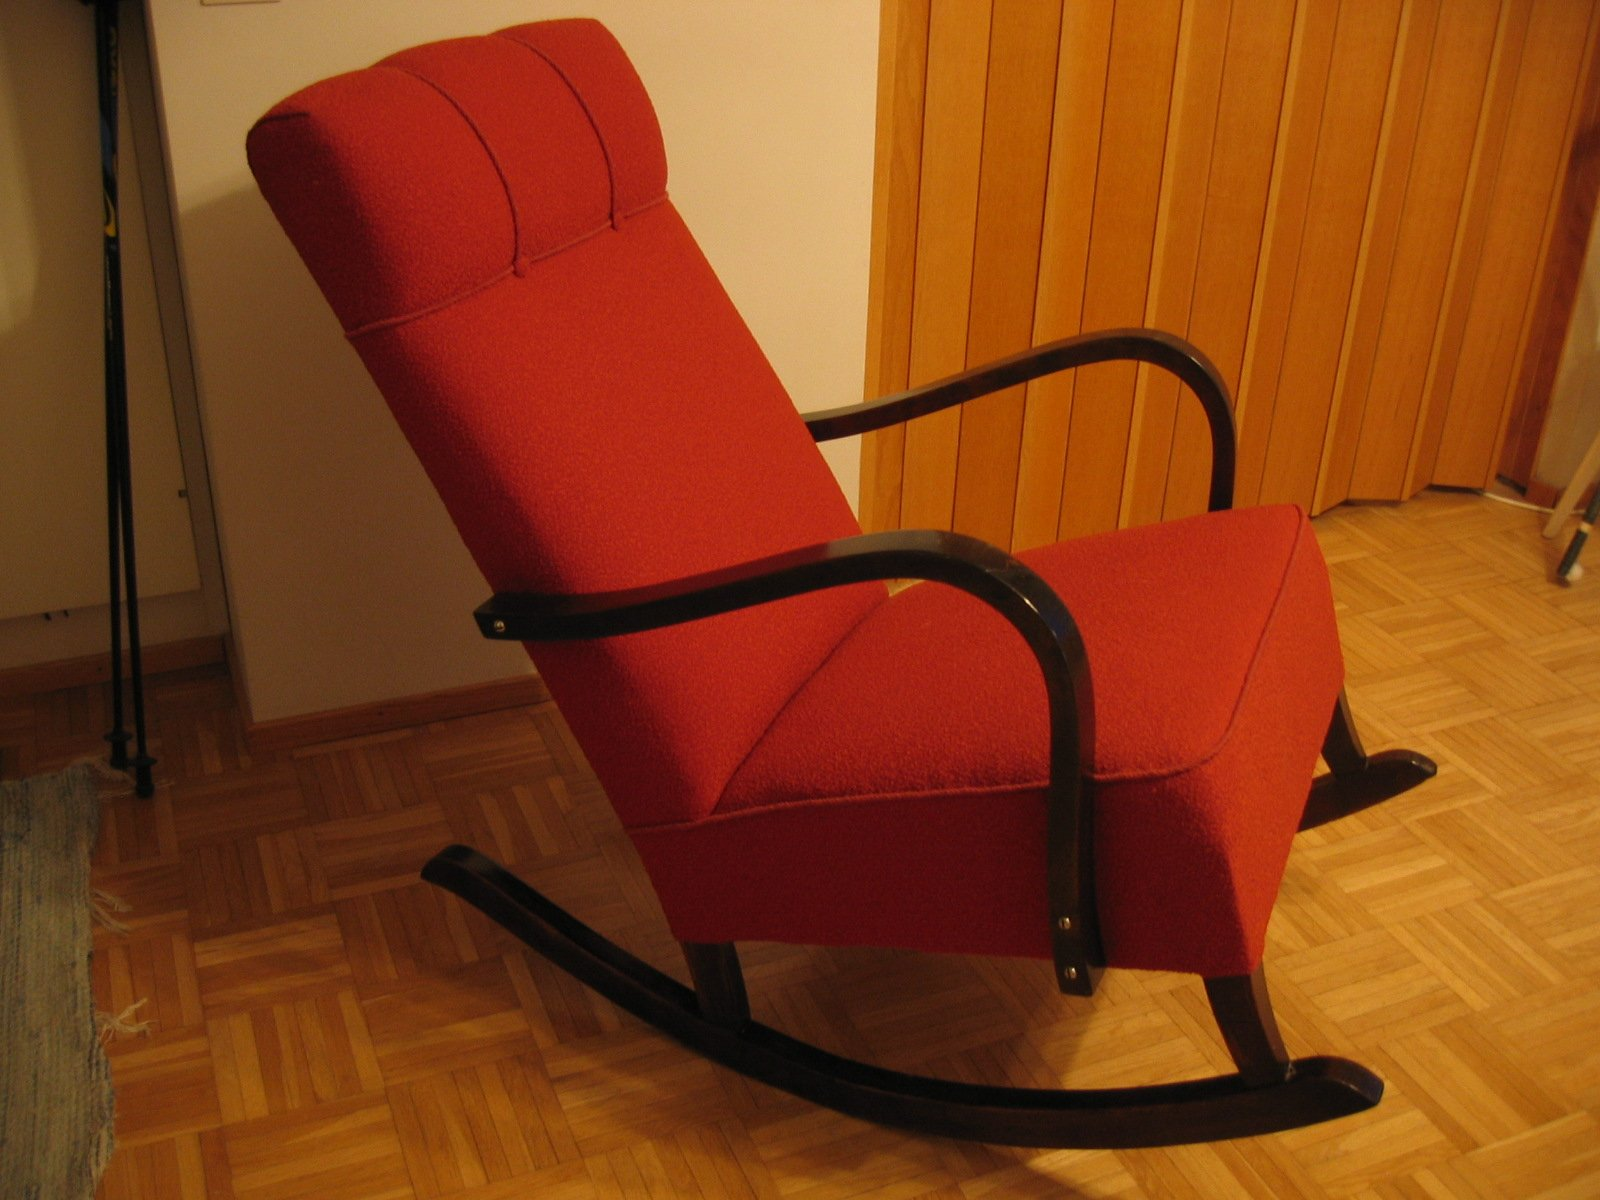 Red Rocking Chair Free Red Rocking Chair Stock Photo Freeimages